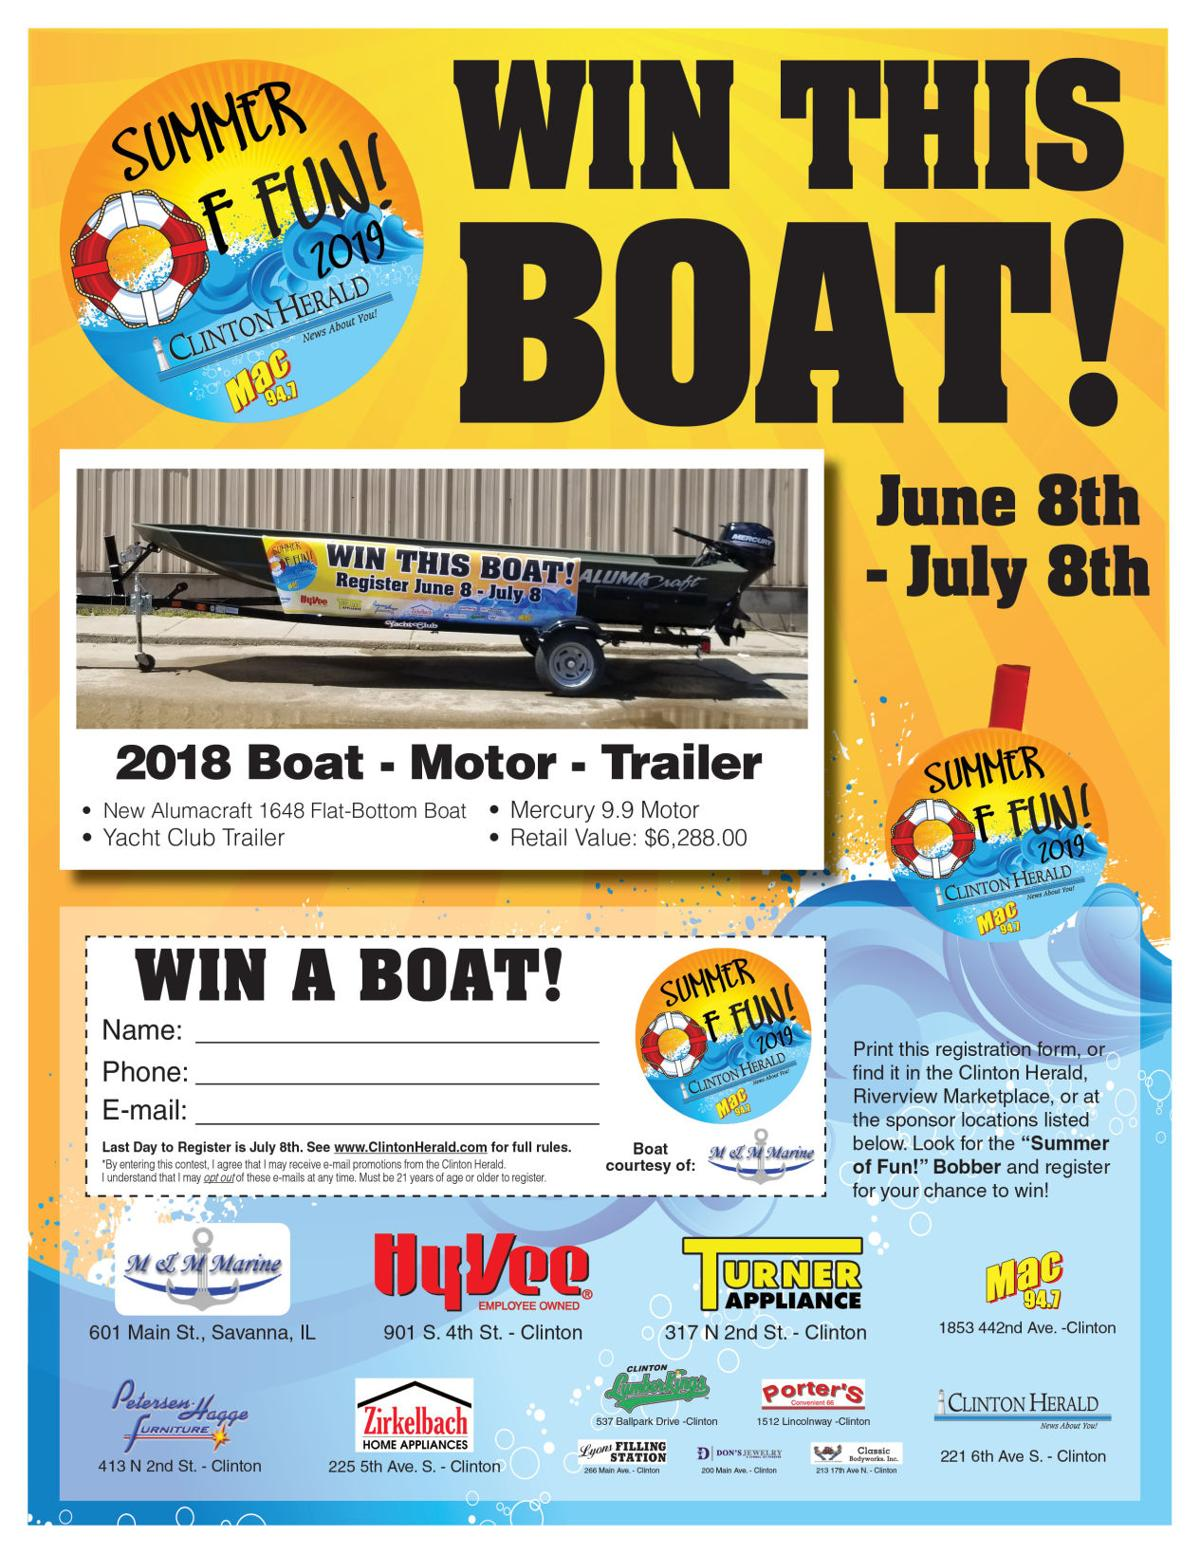 2019 Clinton Herald Boat Giveaway Form